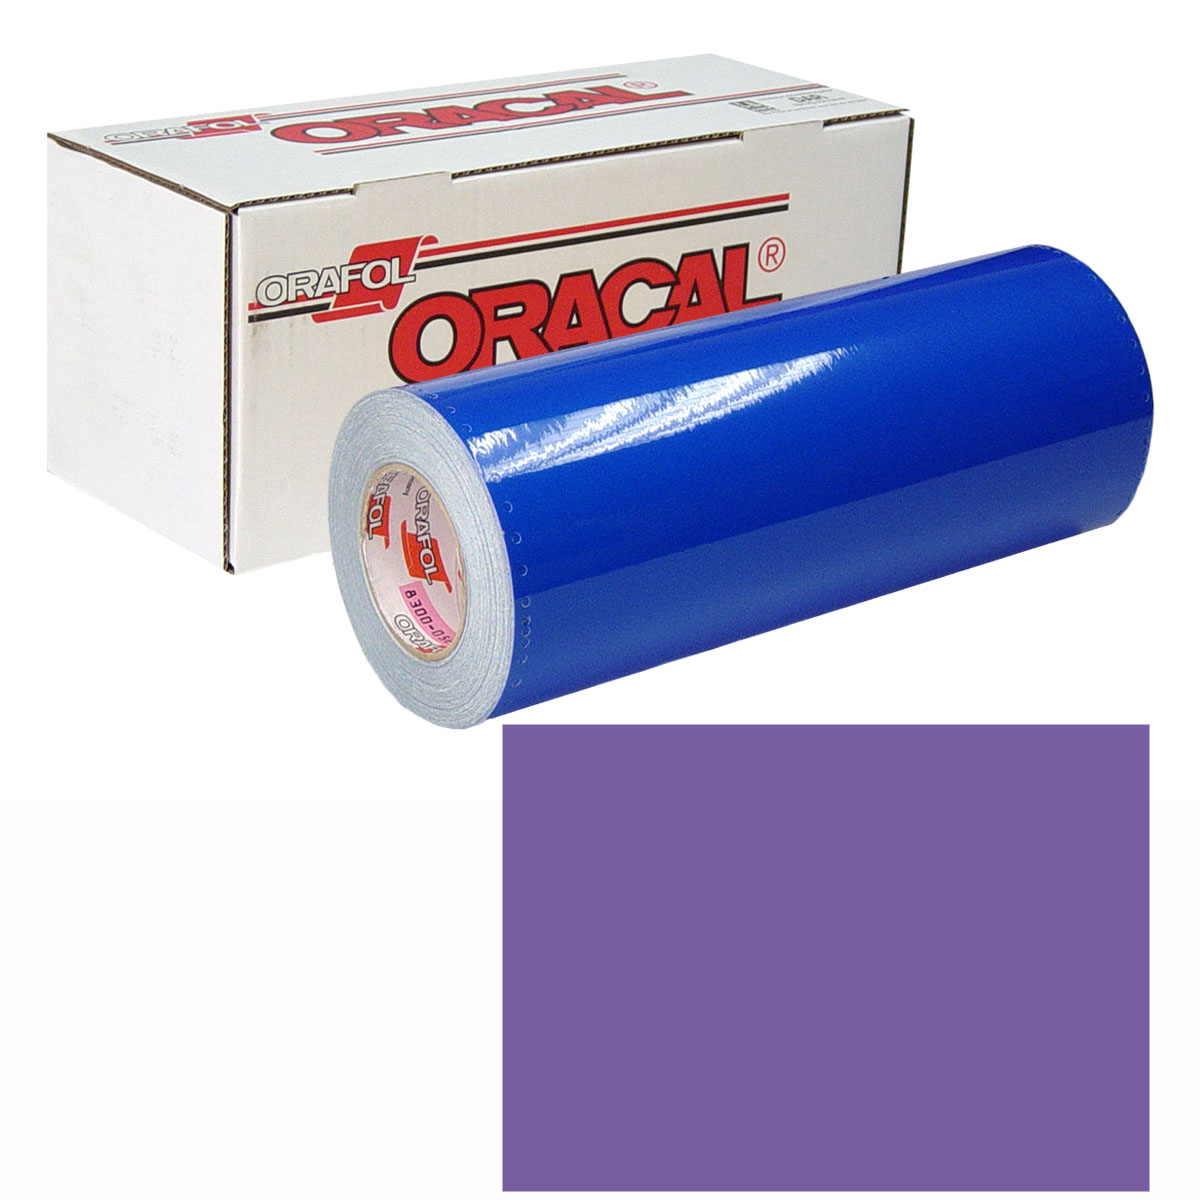 ORACAL 631 Unp 24In X 50Yd 043 Lavender